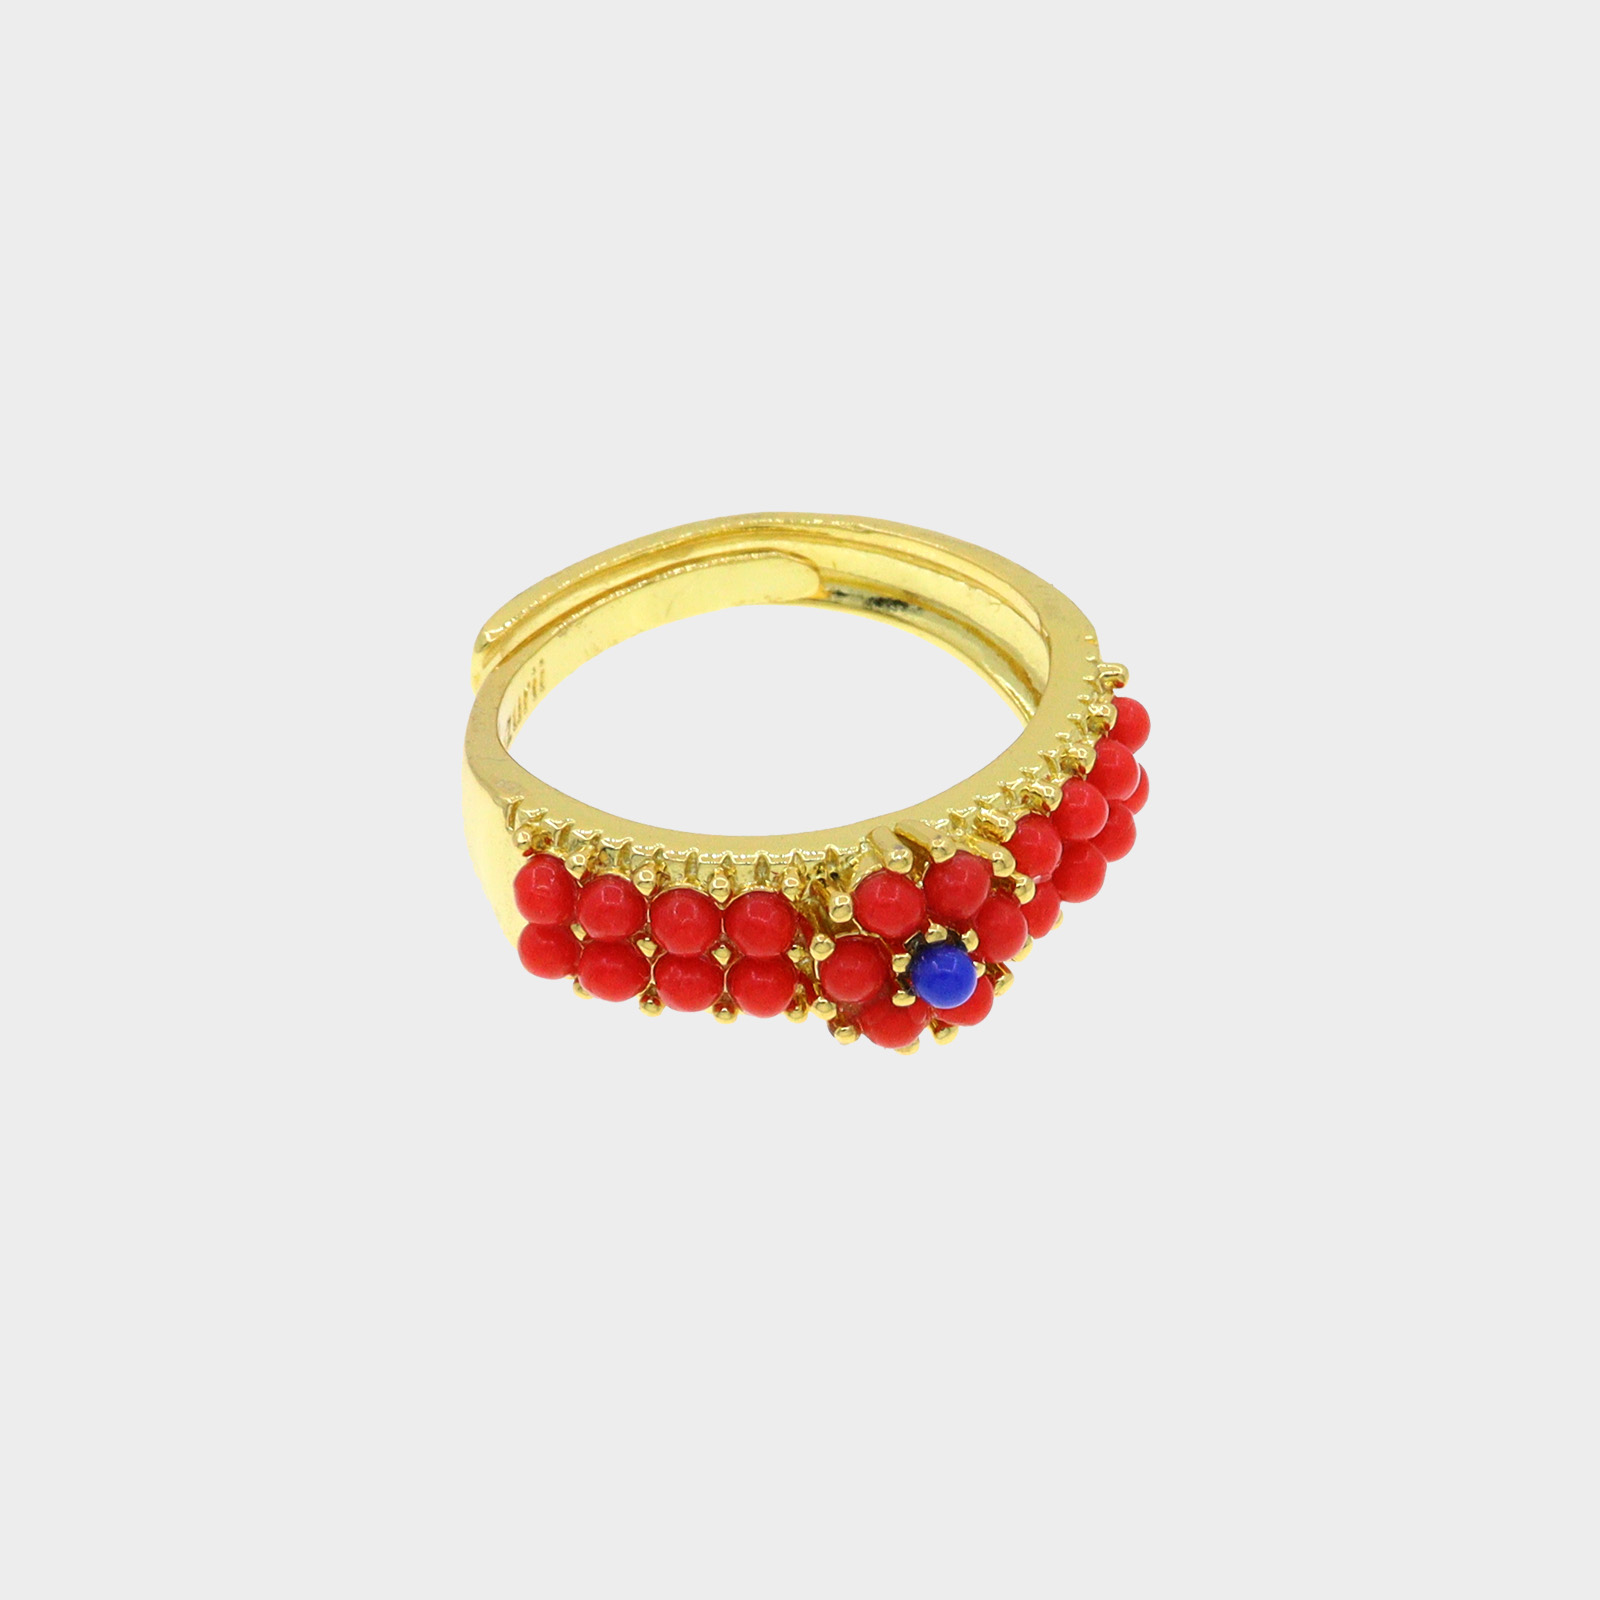 The Amazon Ring Red